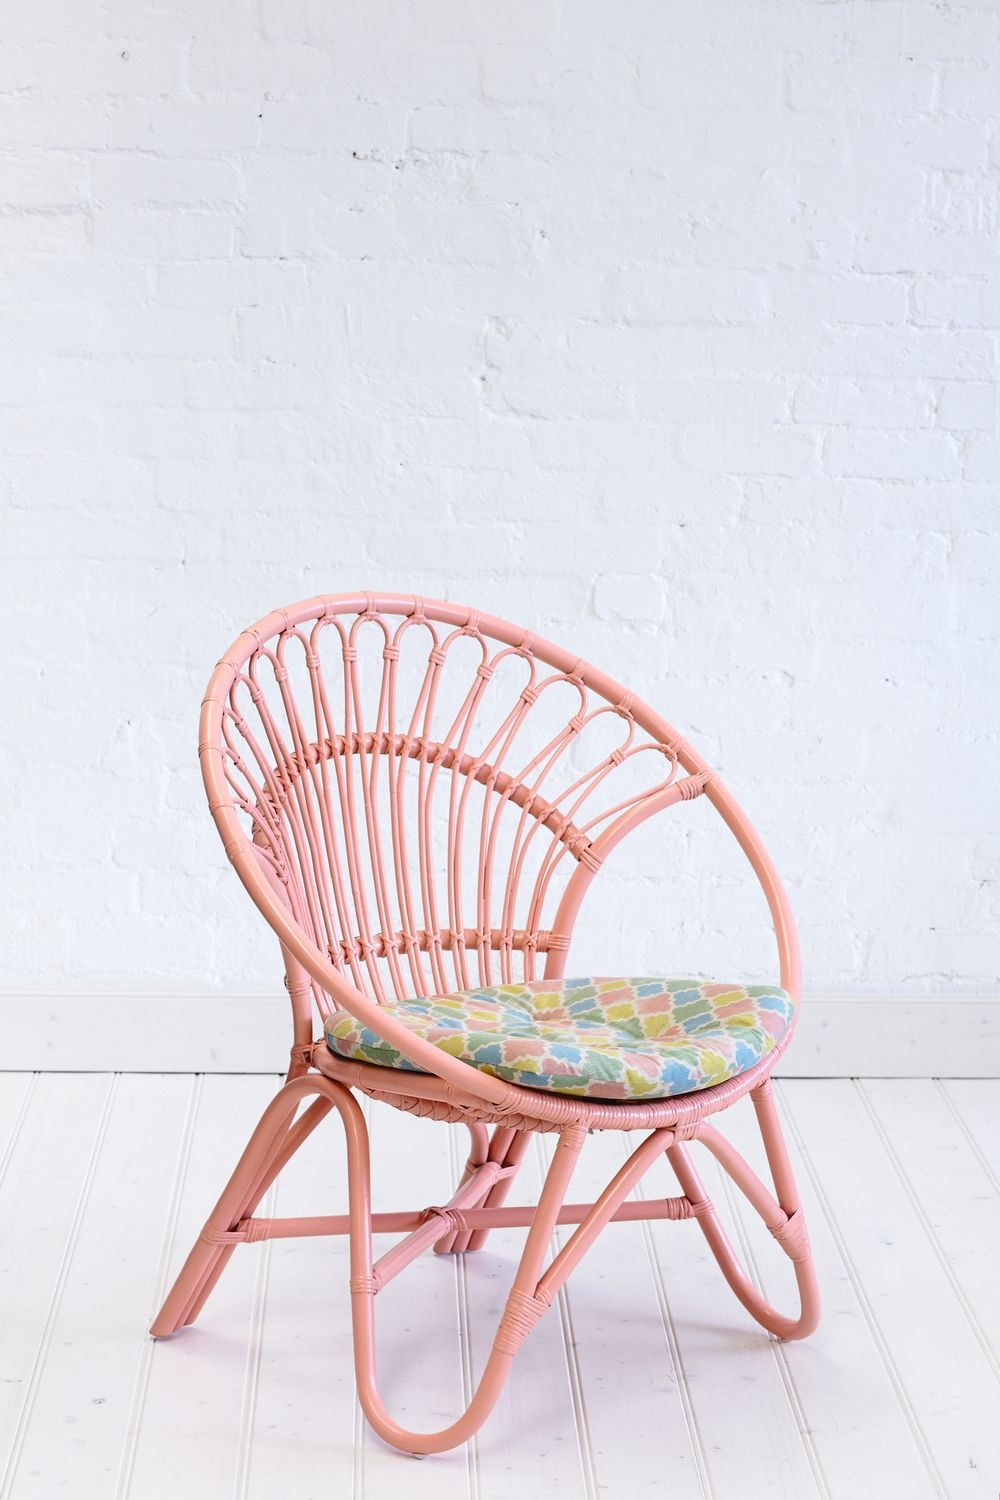 Bon Round Wooden Chair With Cushion